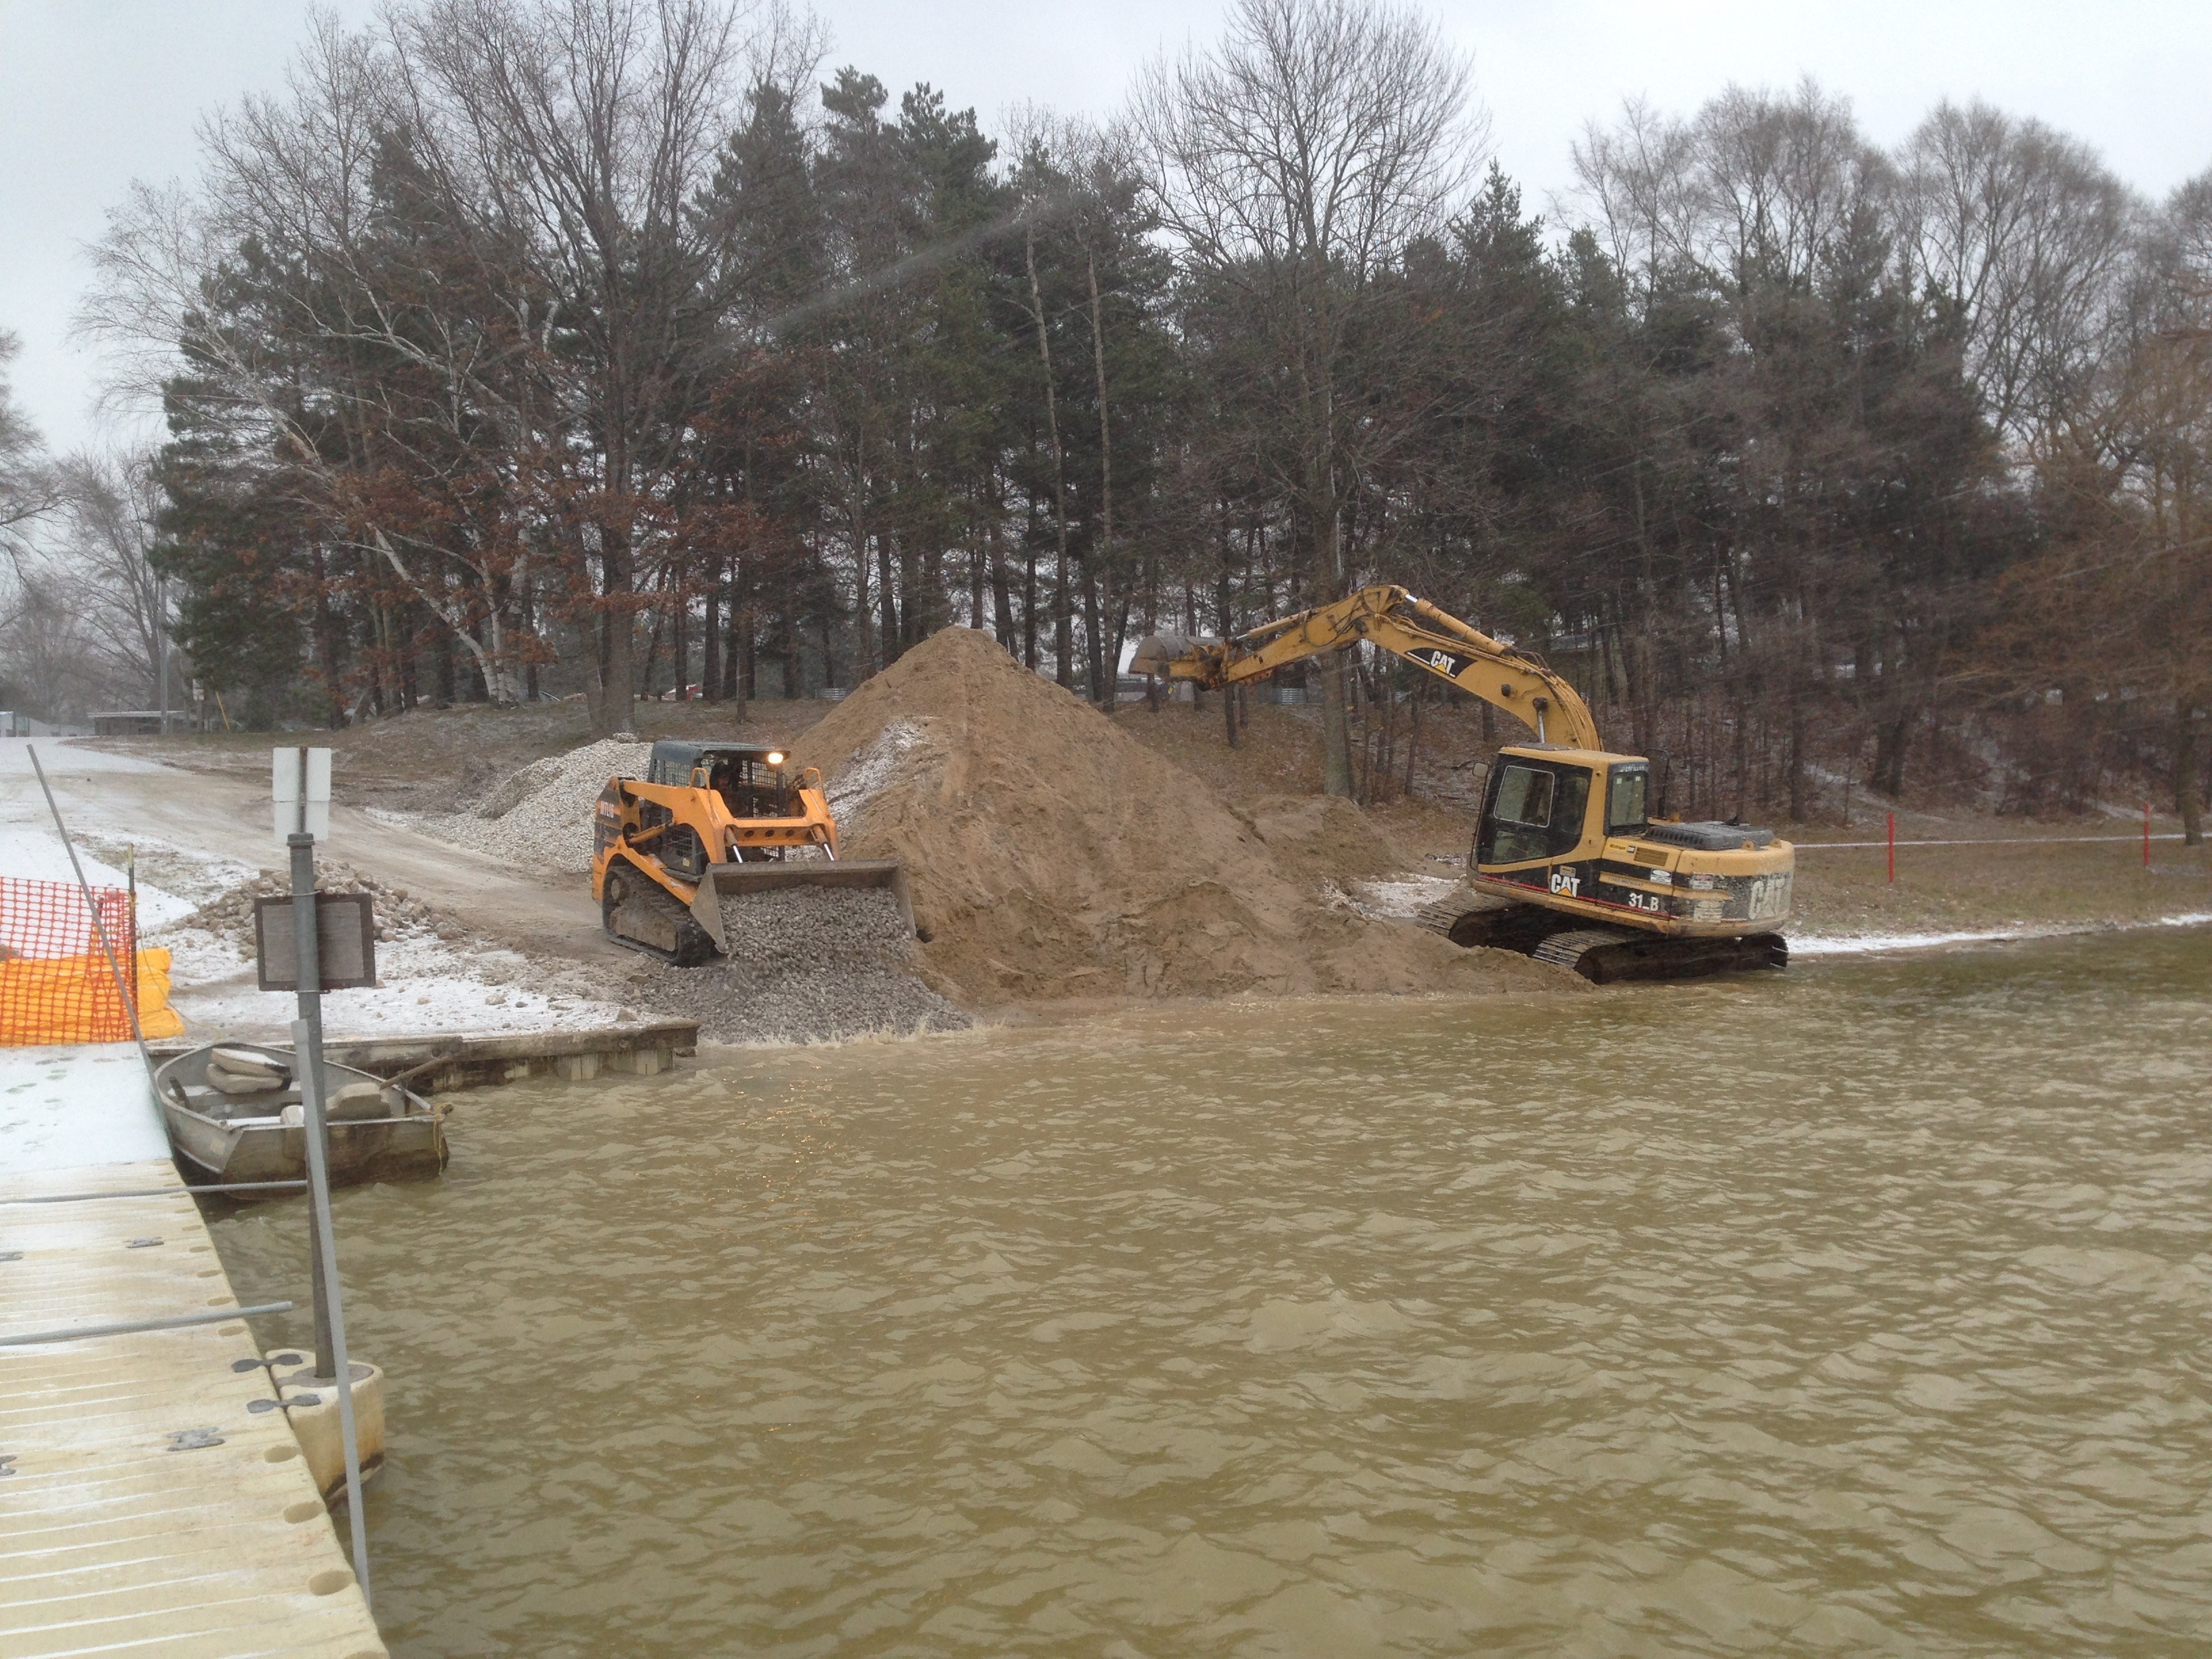 Boat_launch_installation_Michigan_Weidman_Michigan_19.jpg